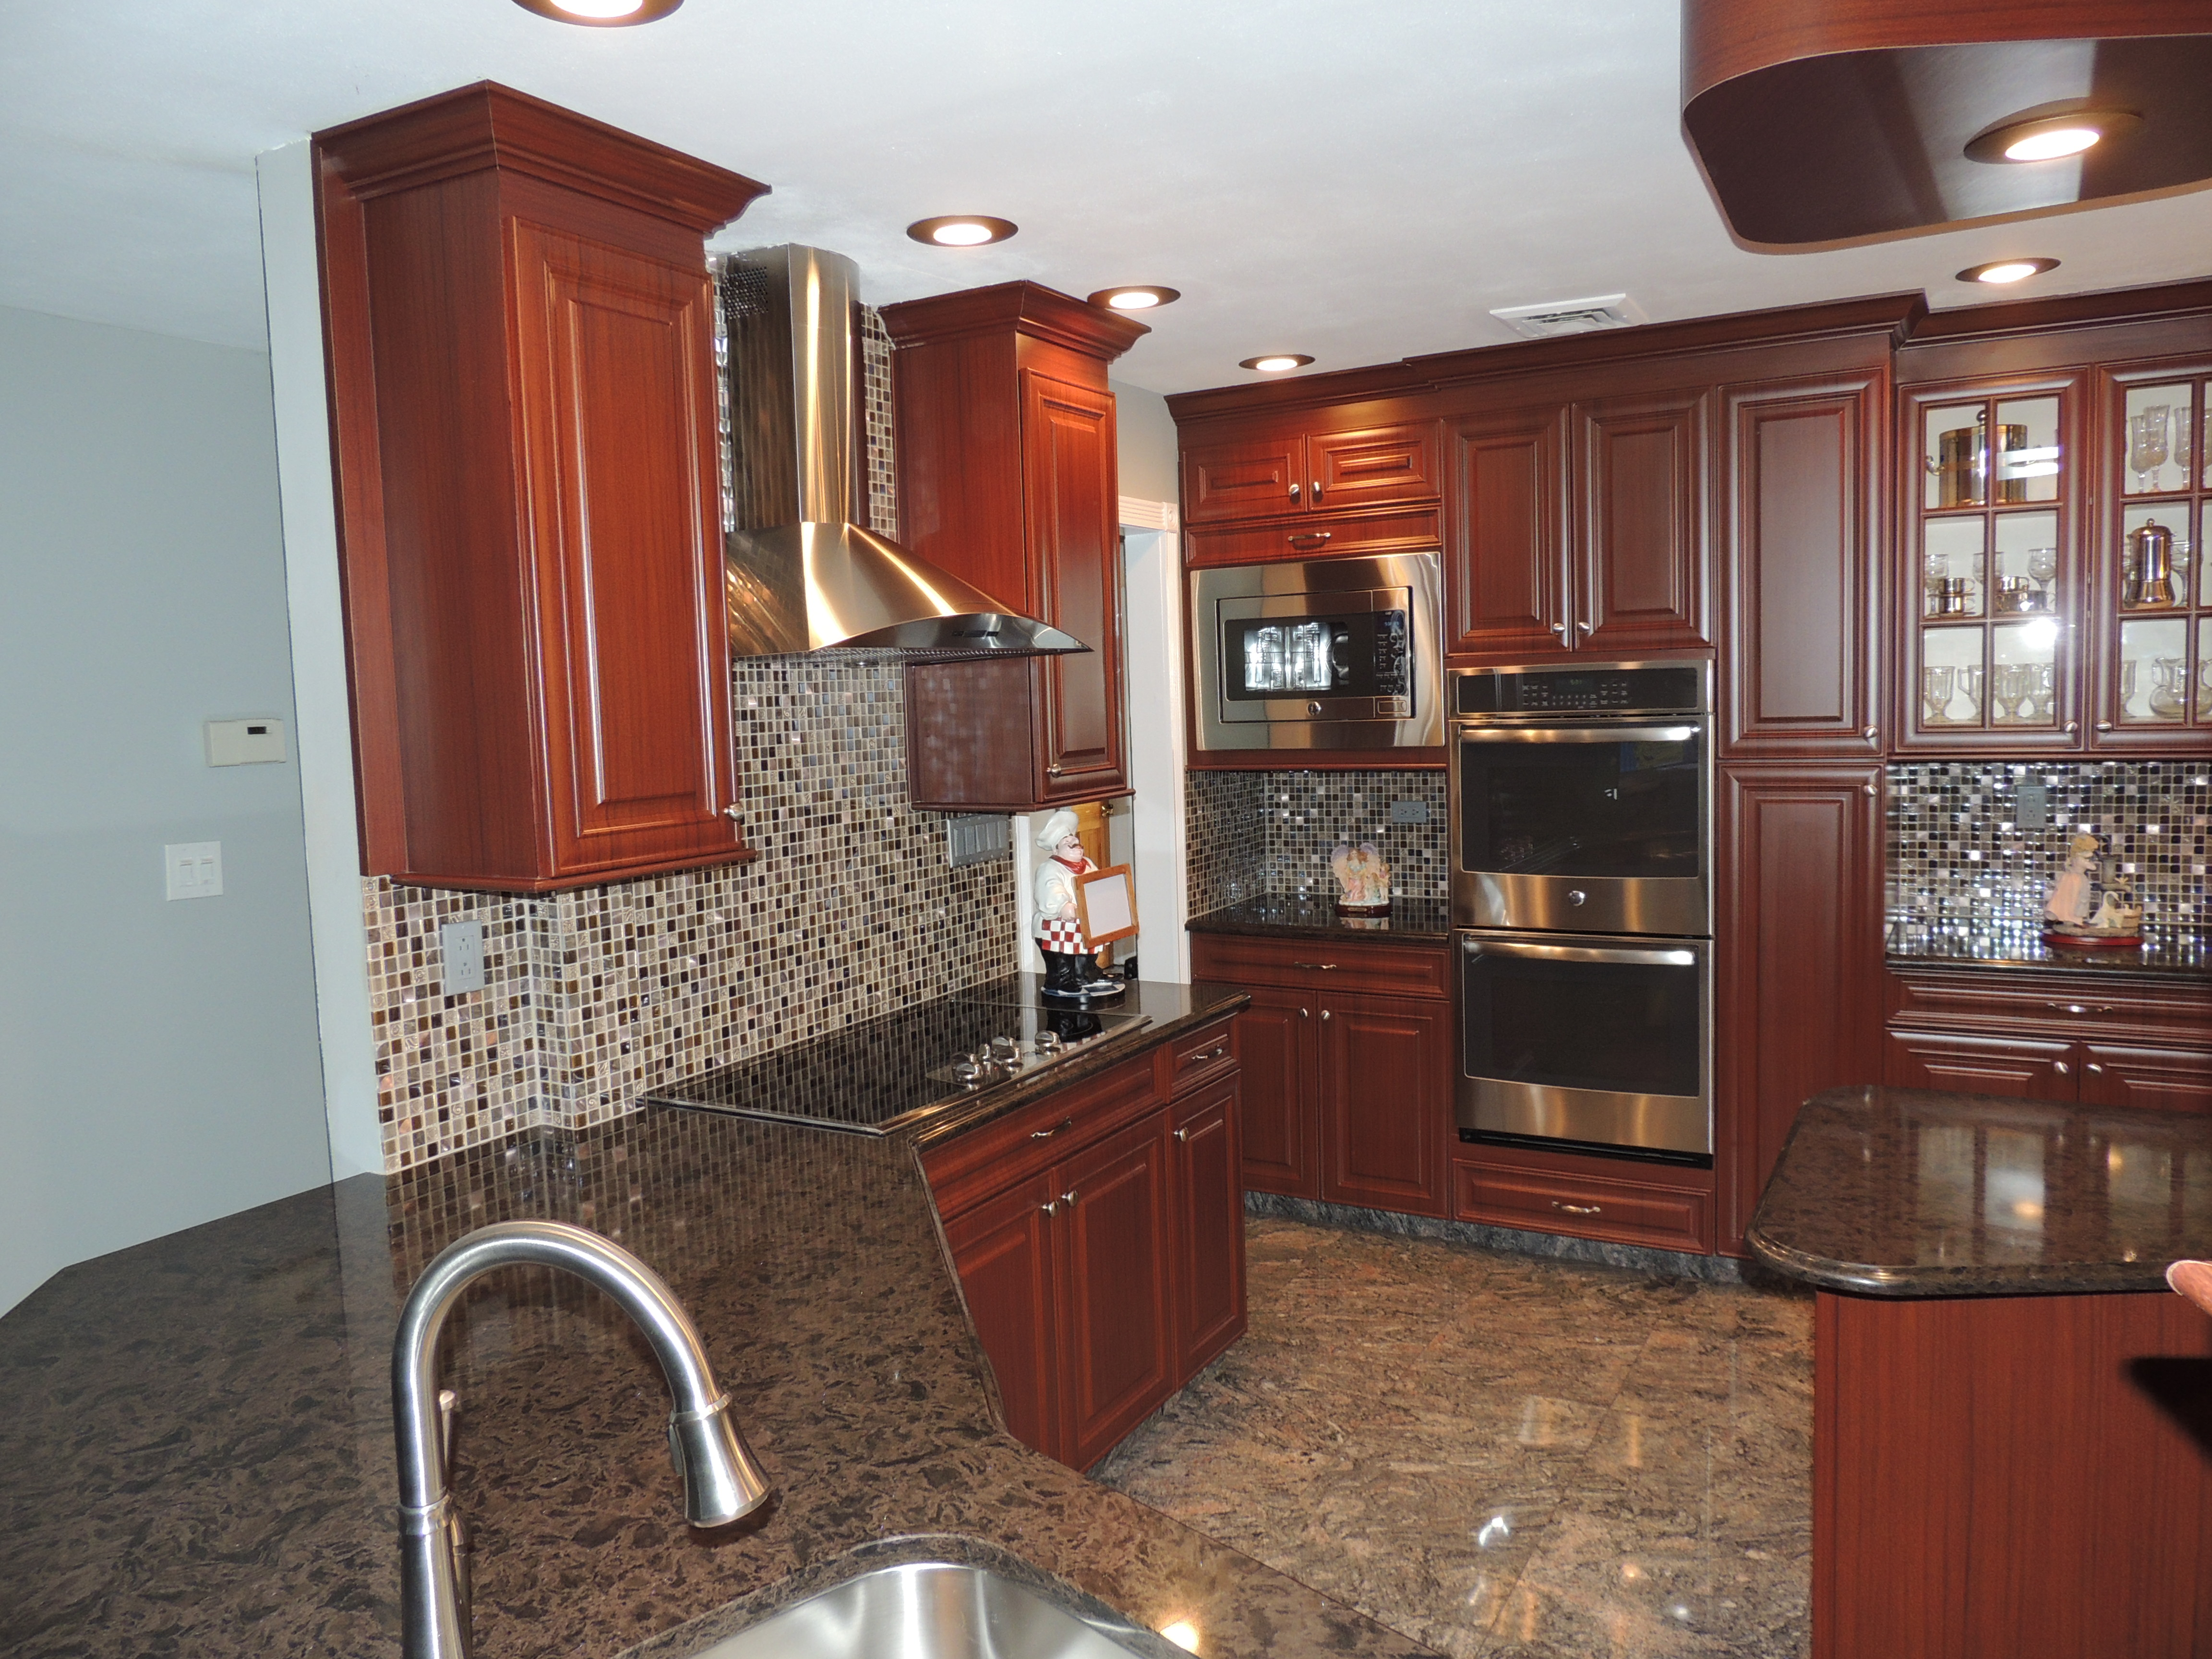 Kitchen Cabinet Refacing On Long Island - Infante kitchen cabinet refacing long island